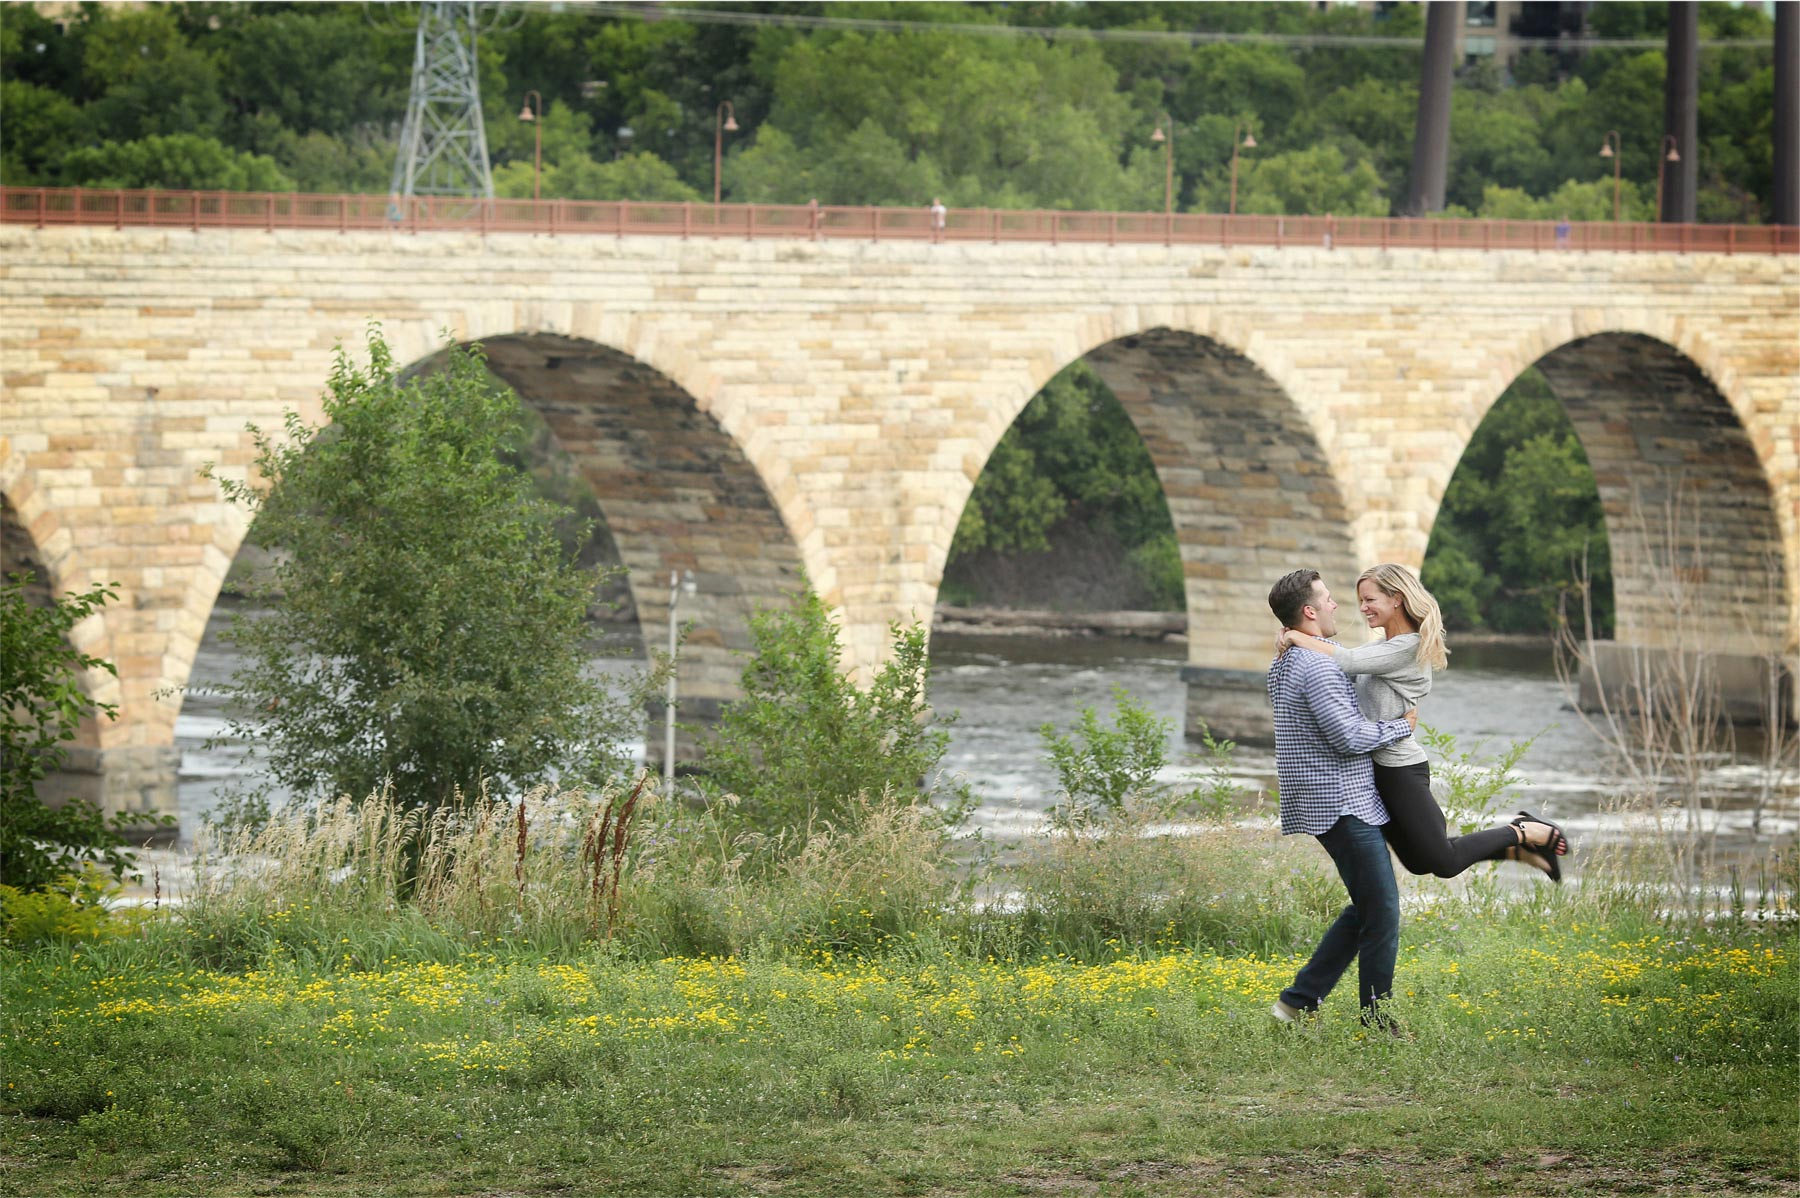 13-Minneapolis-Minnesota-Engagement-Photographer-by-Andrew-Vick-Photography-Summer-Mississippi-River-Stone-Arch-Bridge-Twirling-Tina-and-Kevin.jpg